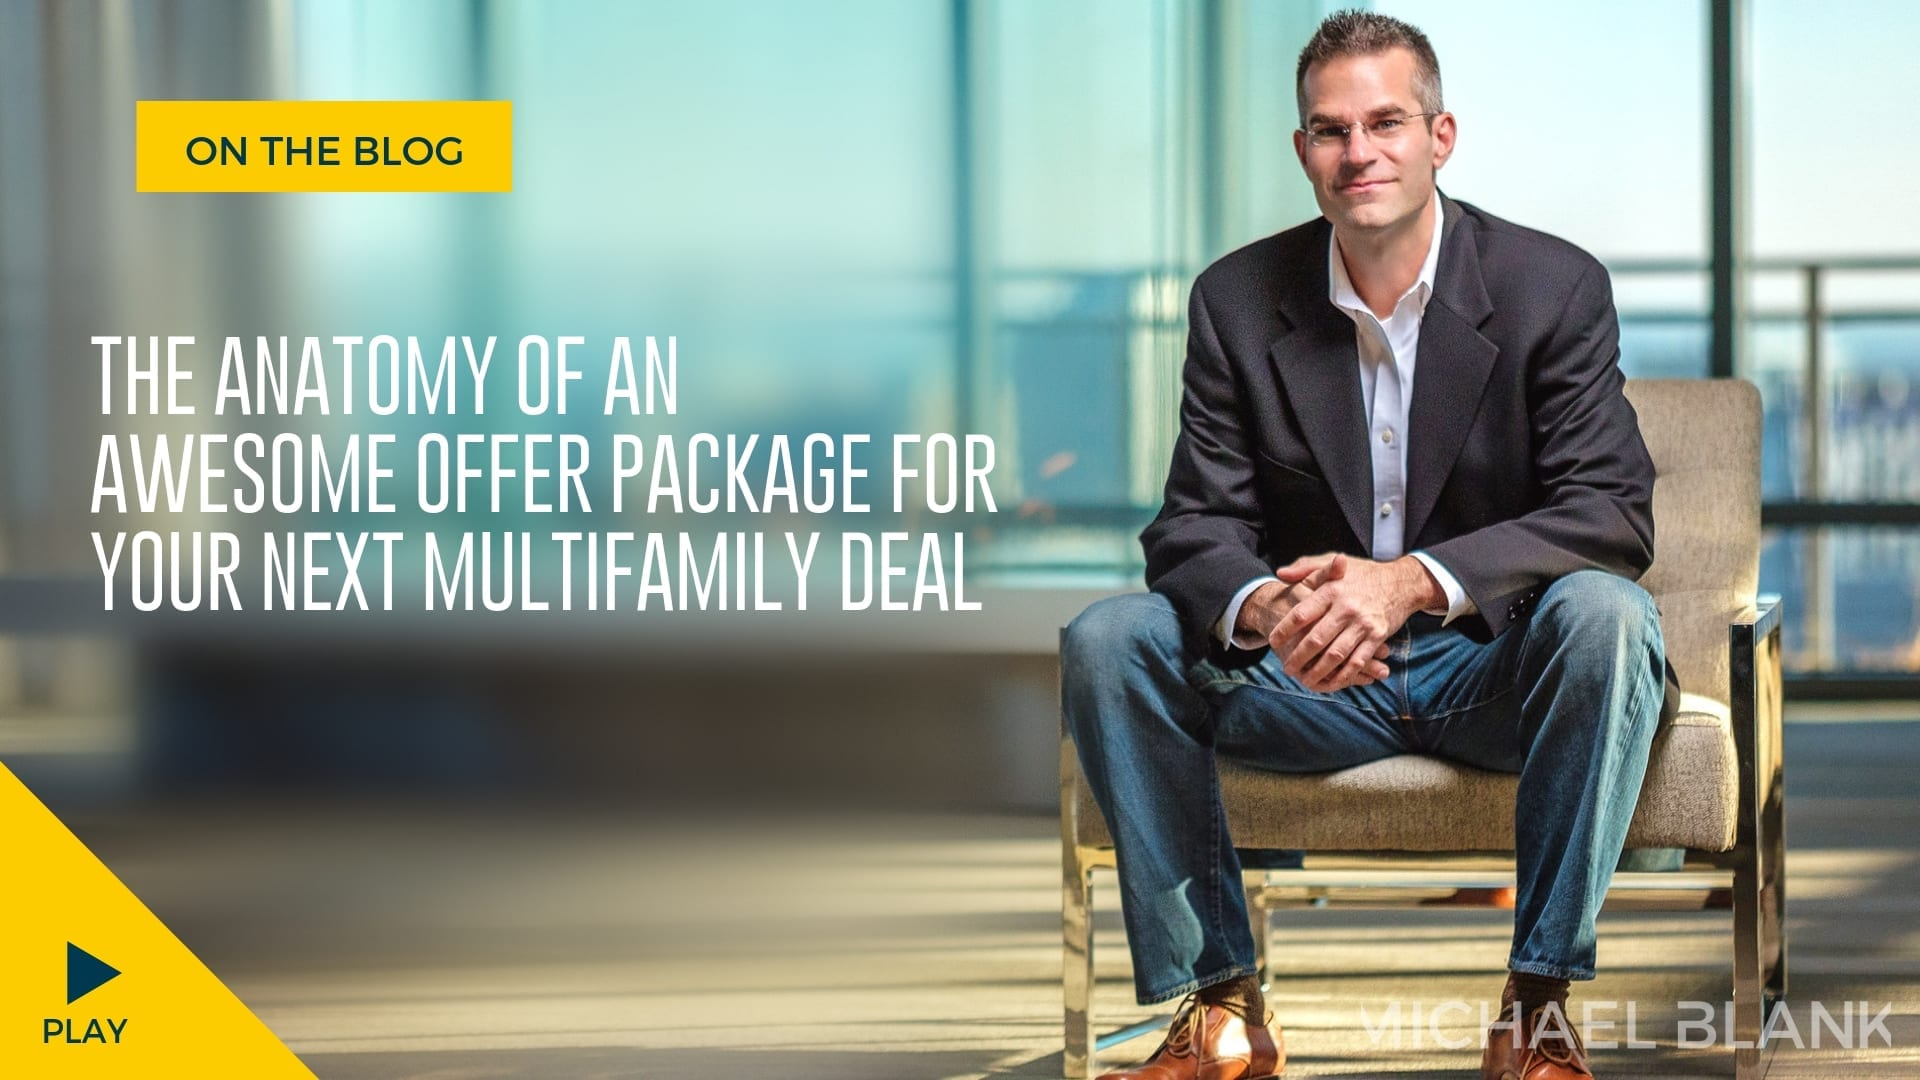 The Anatomy of an Awesome Offer Package for Your Next Multifamily Deal